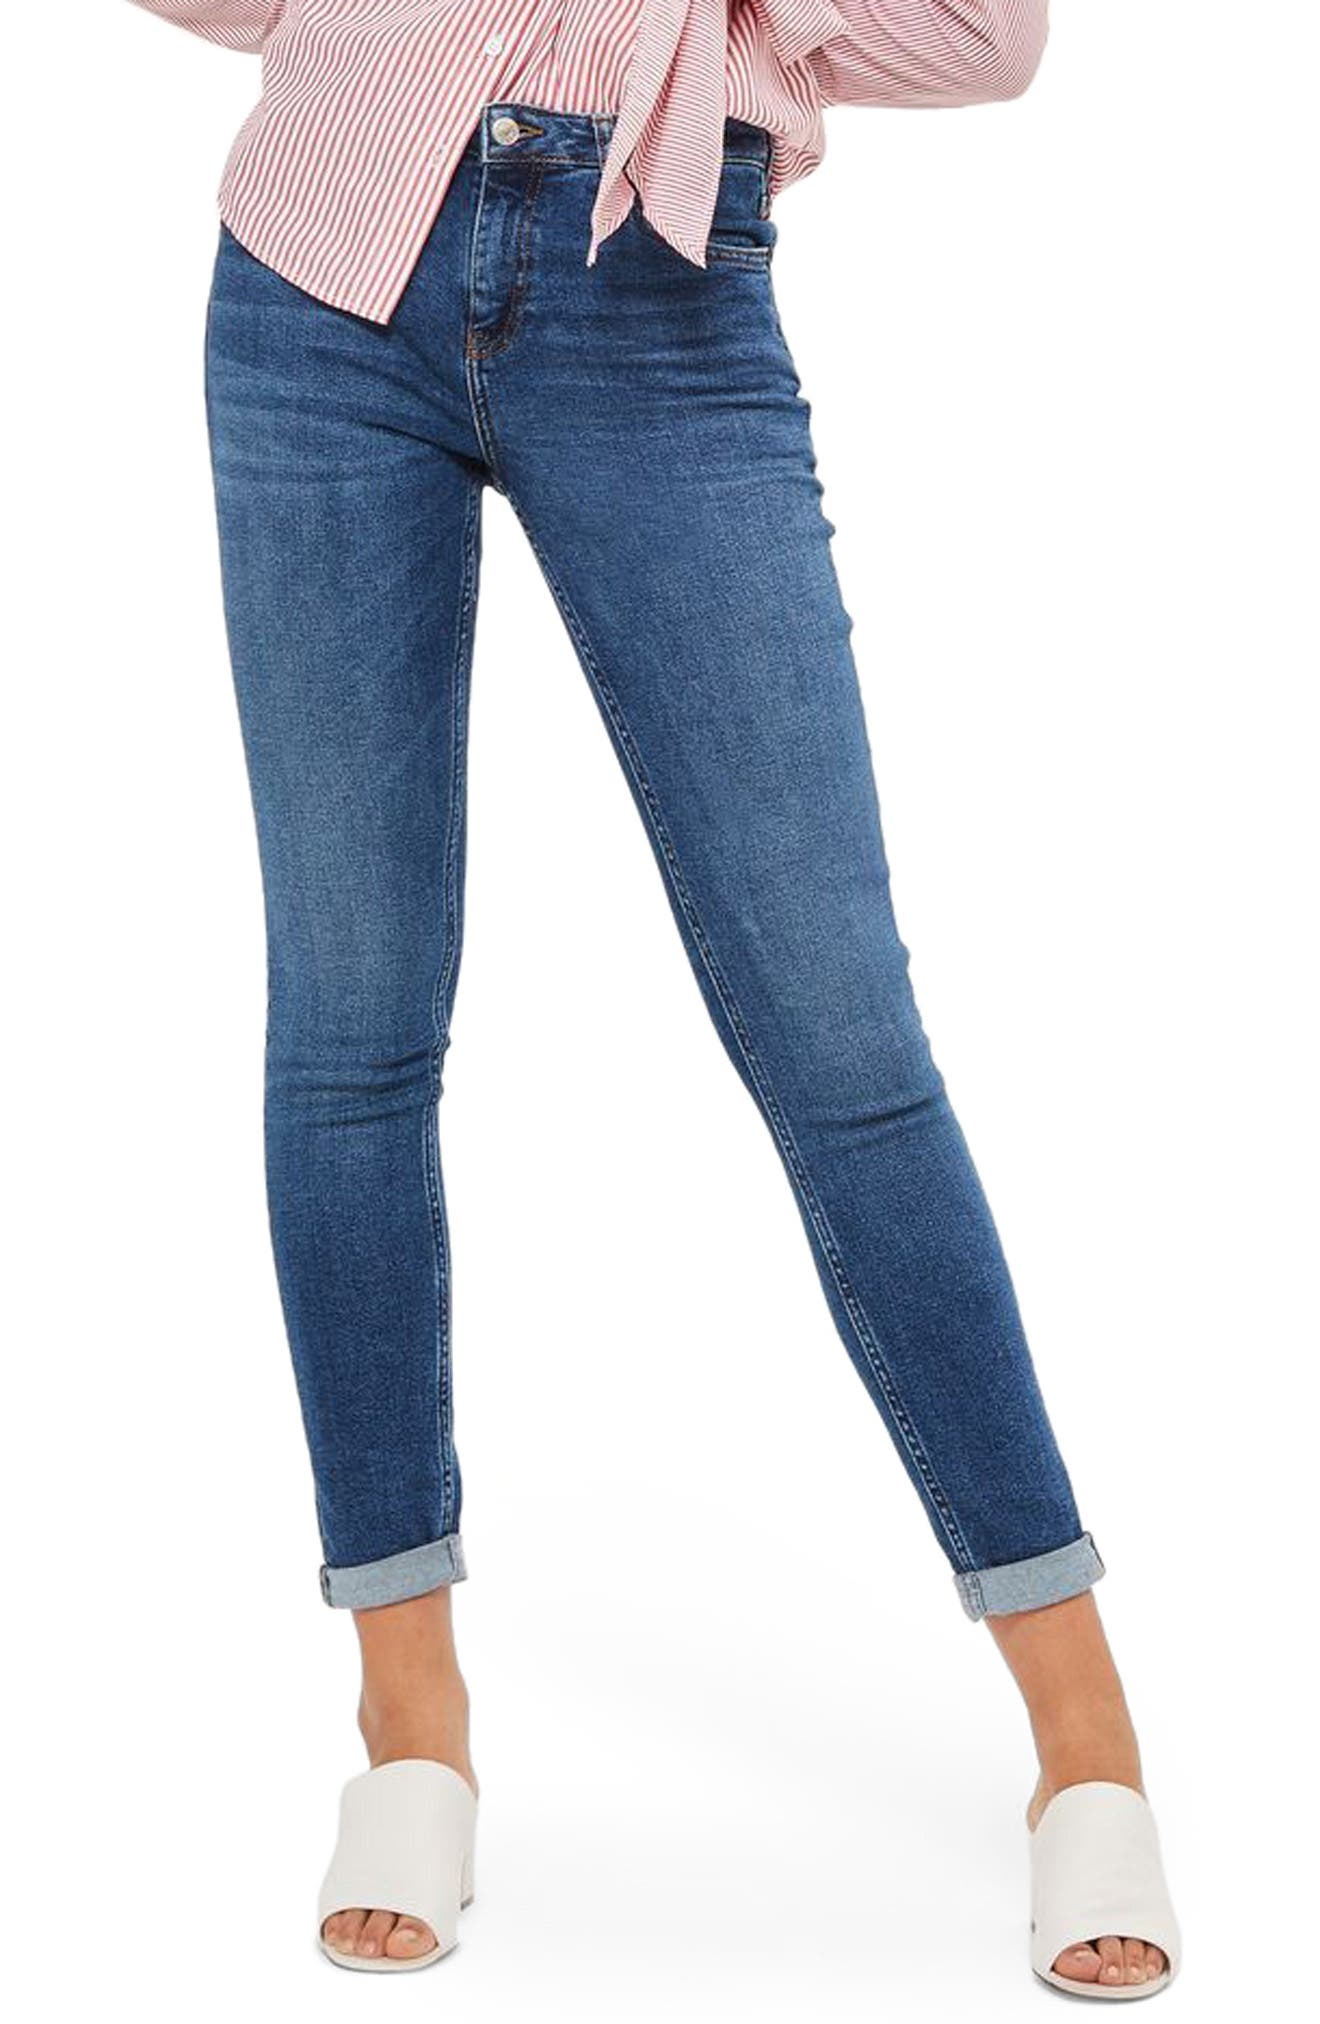 Lucas Relaxed Fit Jeans,                             Main thumbnail 1, color,                             400